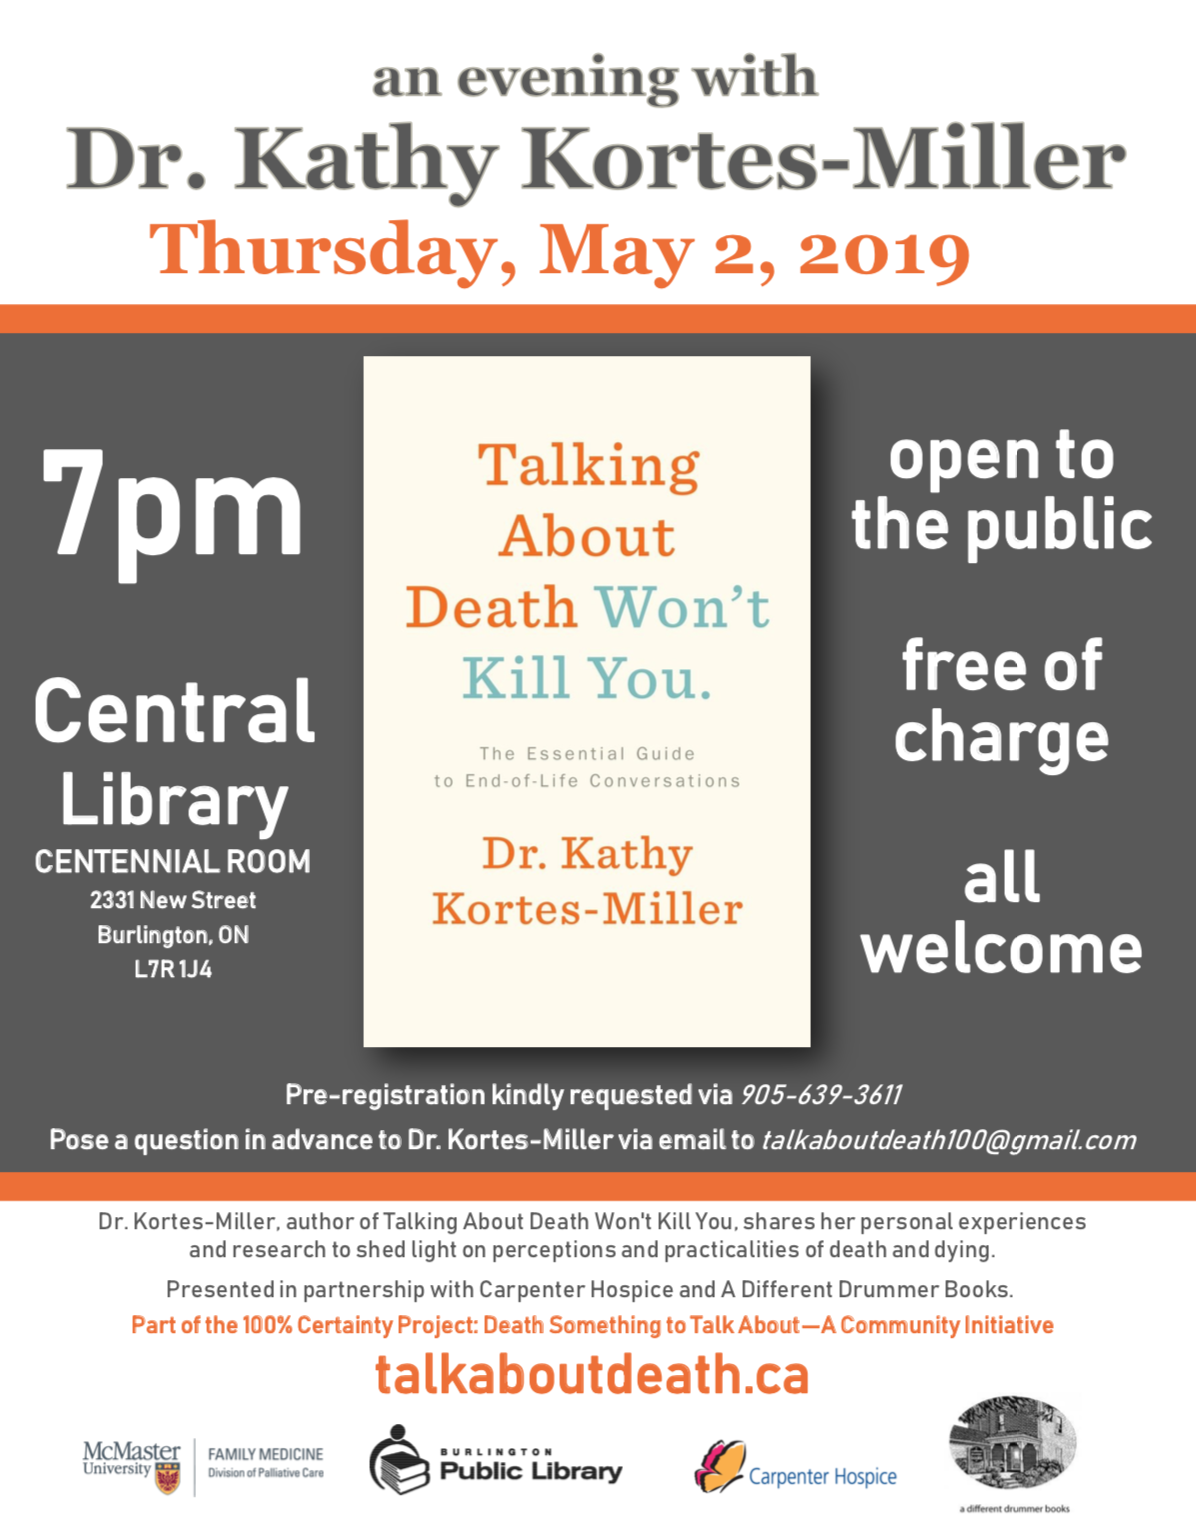 "Please join us for this final evening in our series of FREE public events. As part of the Division of Palliative Care at  McMaster Faculty of Health Sciences , and our ""The 100% Certainty Project. Death: Something to Talk About"", together with  Carpenter Hospice , am honoured to co-host and moderate this event at the  Burlington Public Library  with my brilliant friend and colleague Dr. Kathy Kortes-Miller. While the event is free, registration is required via the Burlington Public Library at (905) 639 3611."